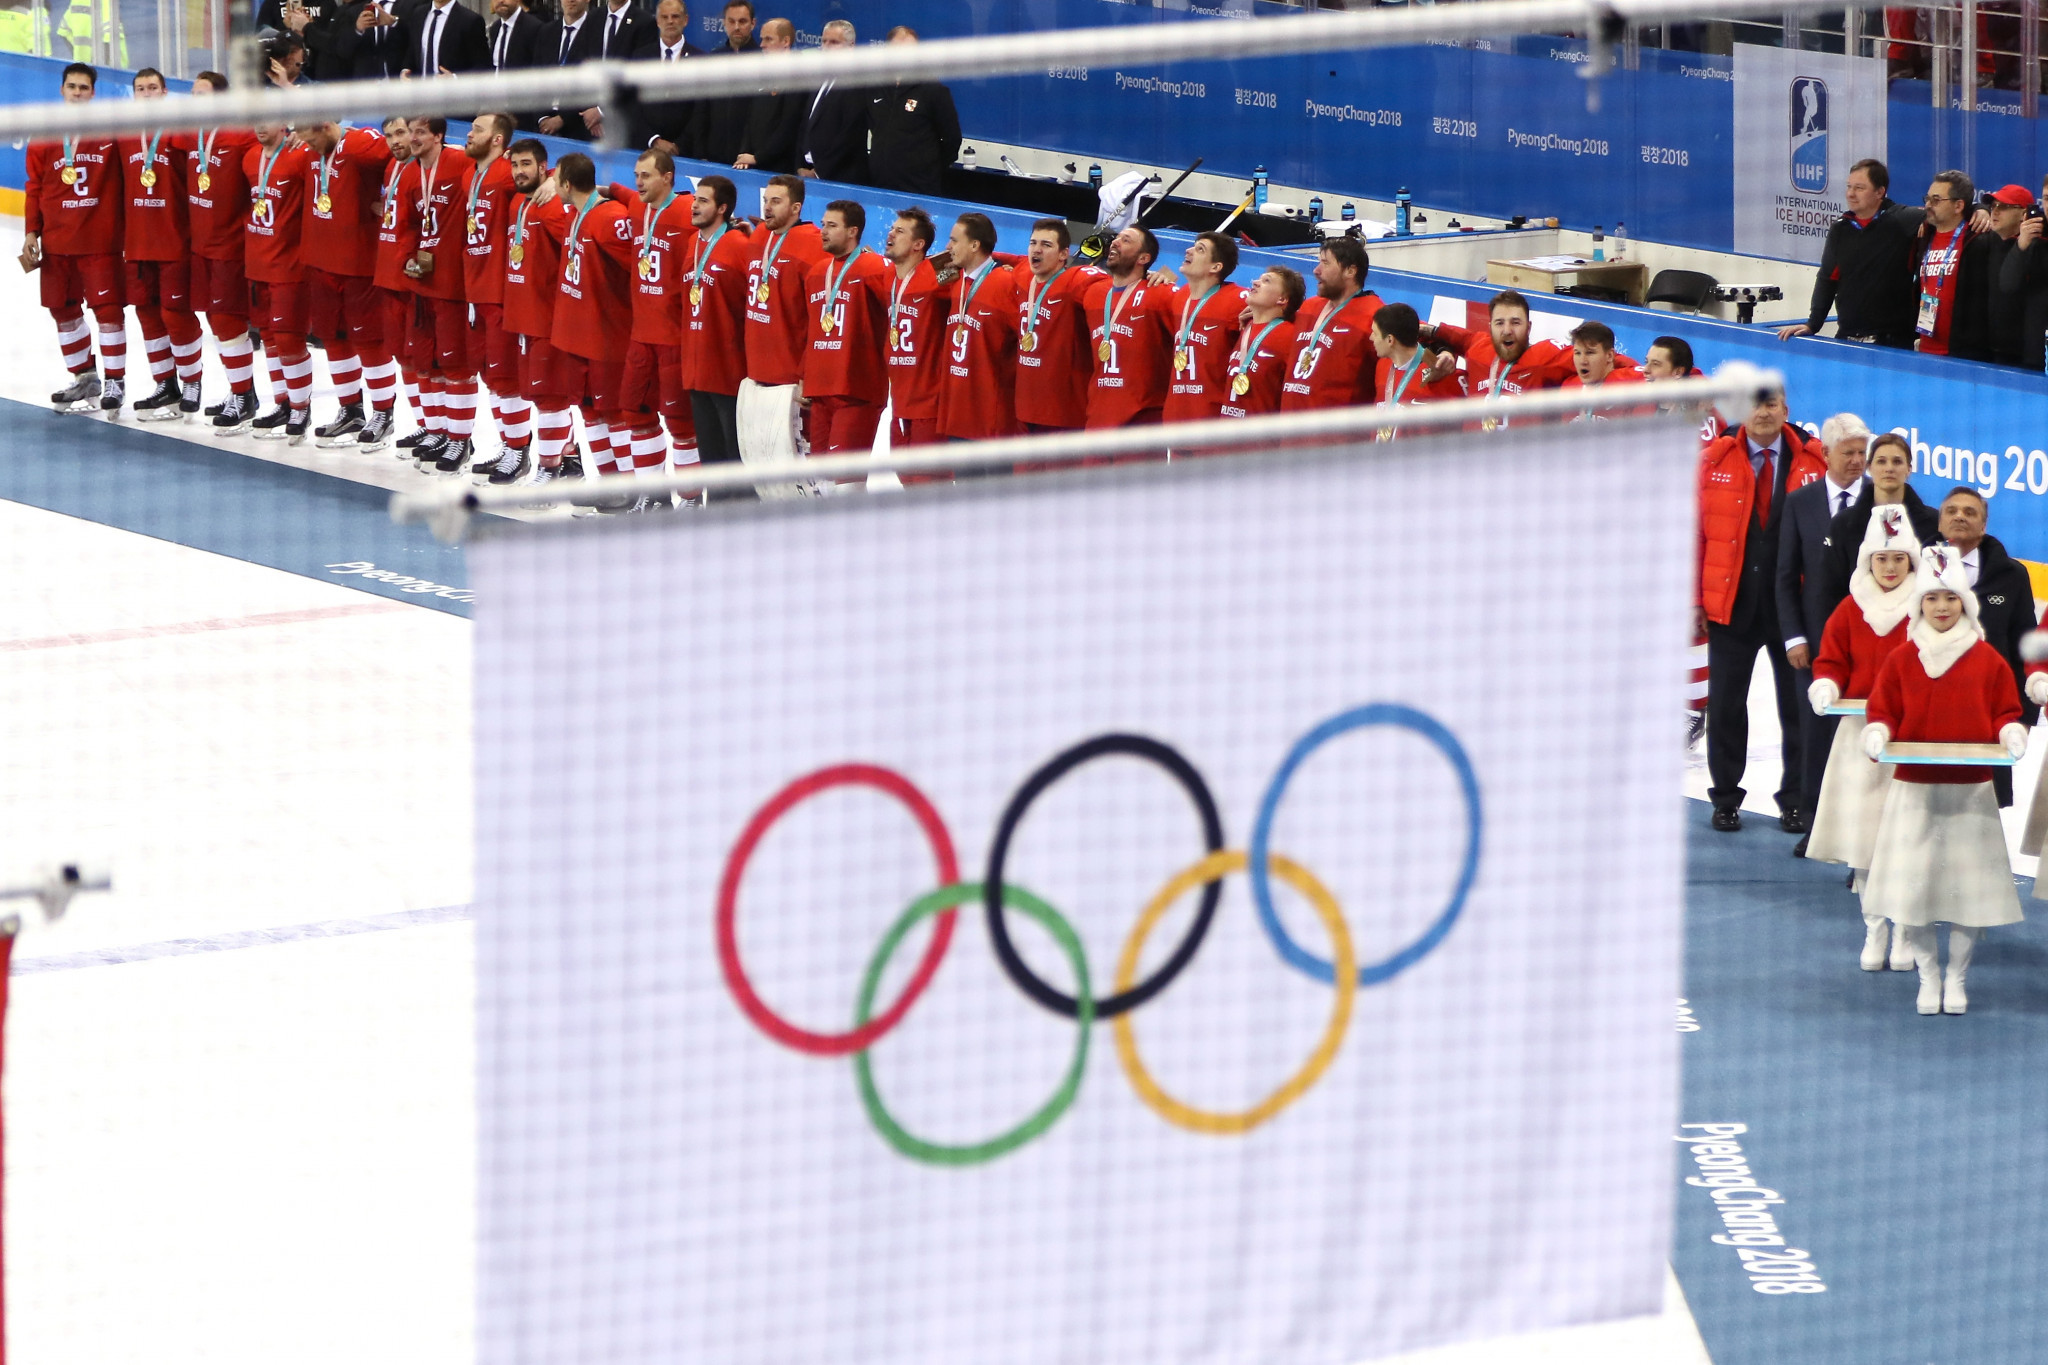 Russia had to compete under the Olympic flag at Pyeongchang 2018 and will have to do the same at Tokyo 2020 if the recommendations of the WADA Compliance Review Committee are accepted ©Getty Images